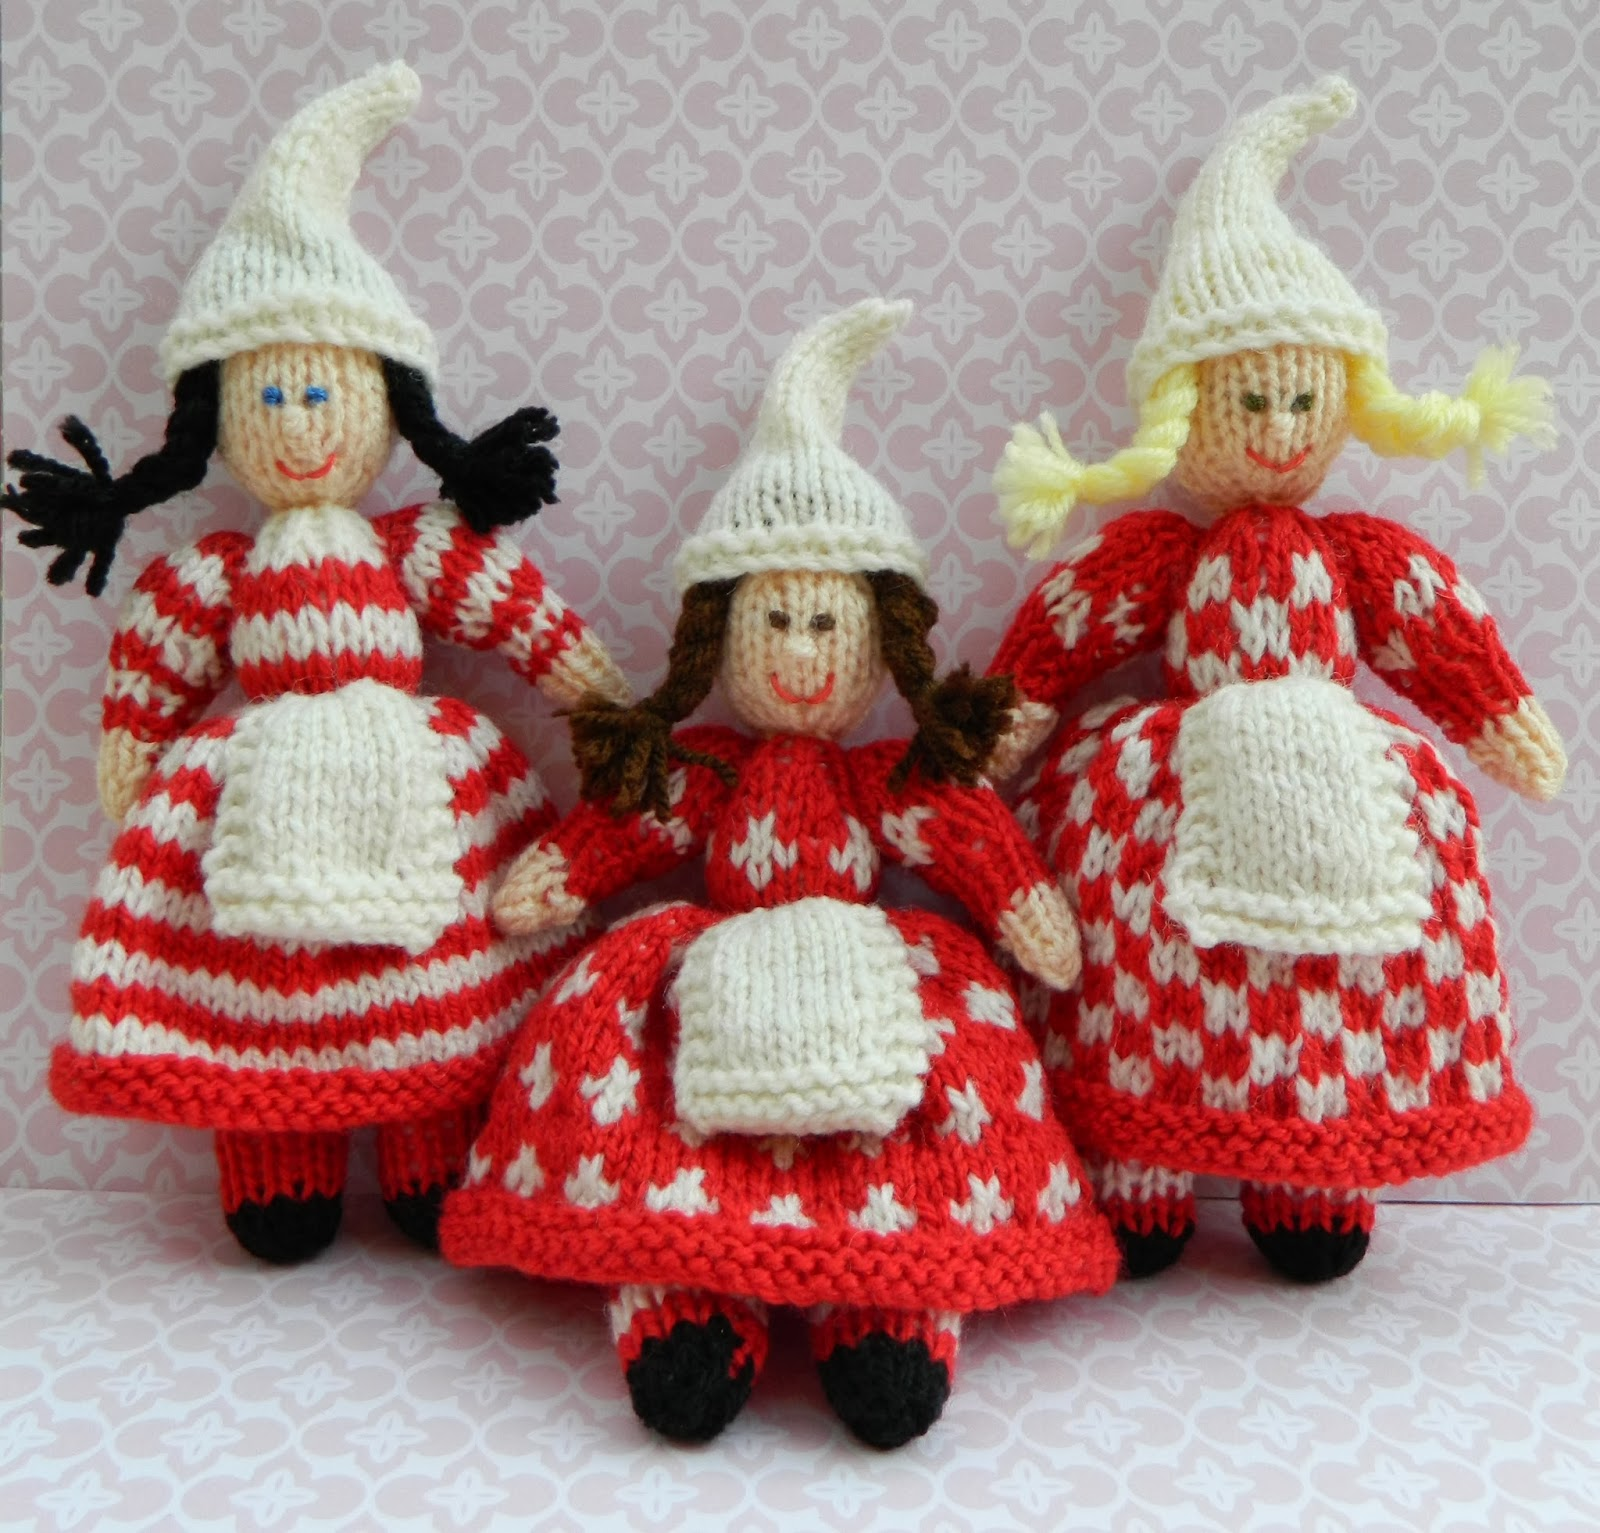 Knitting Patterns For Toy Dolls : Edith Grace Designs - Doll & Toy Knitting Patterns & Cross ...